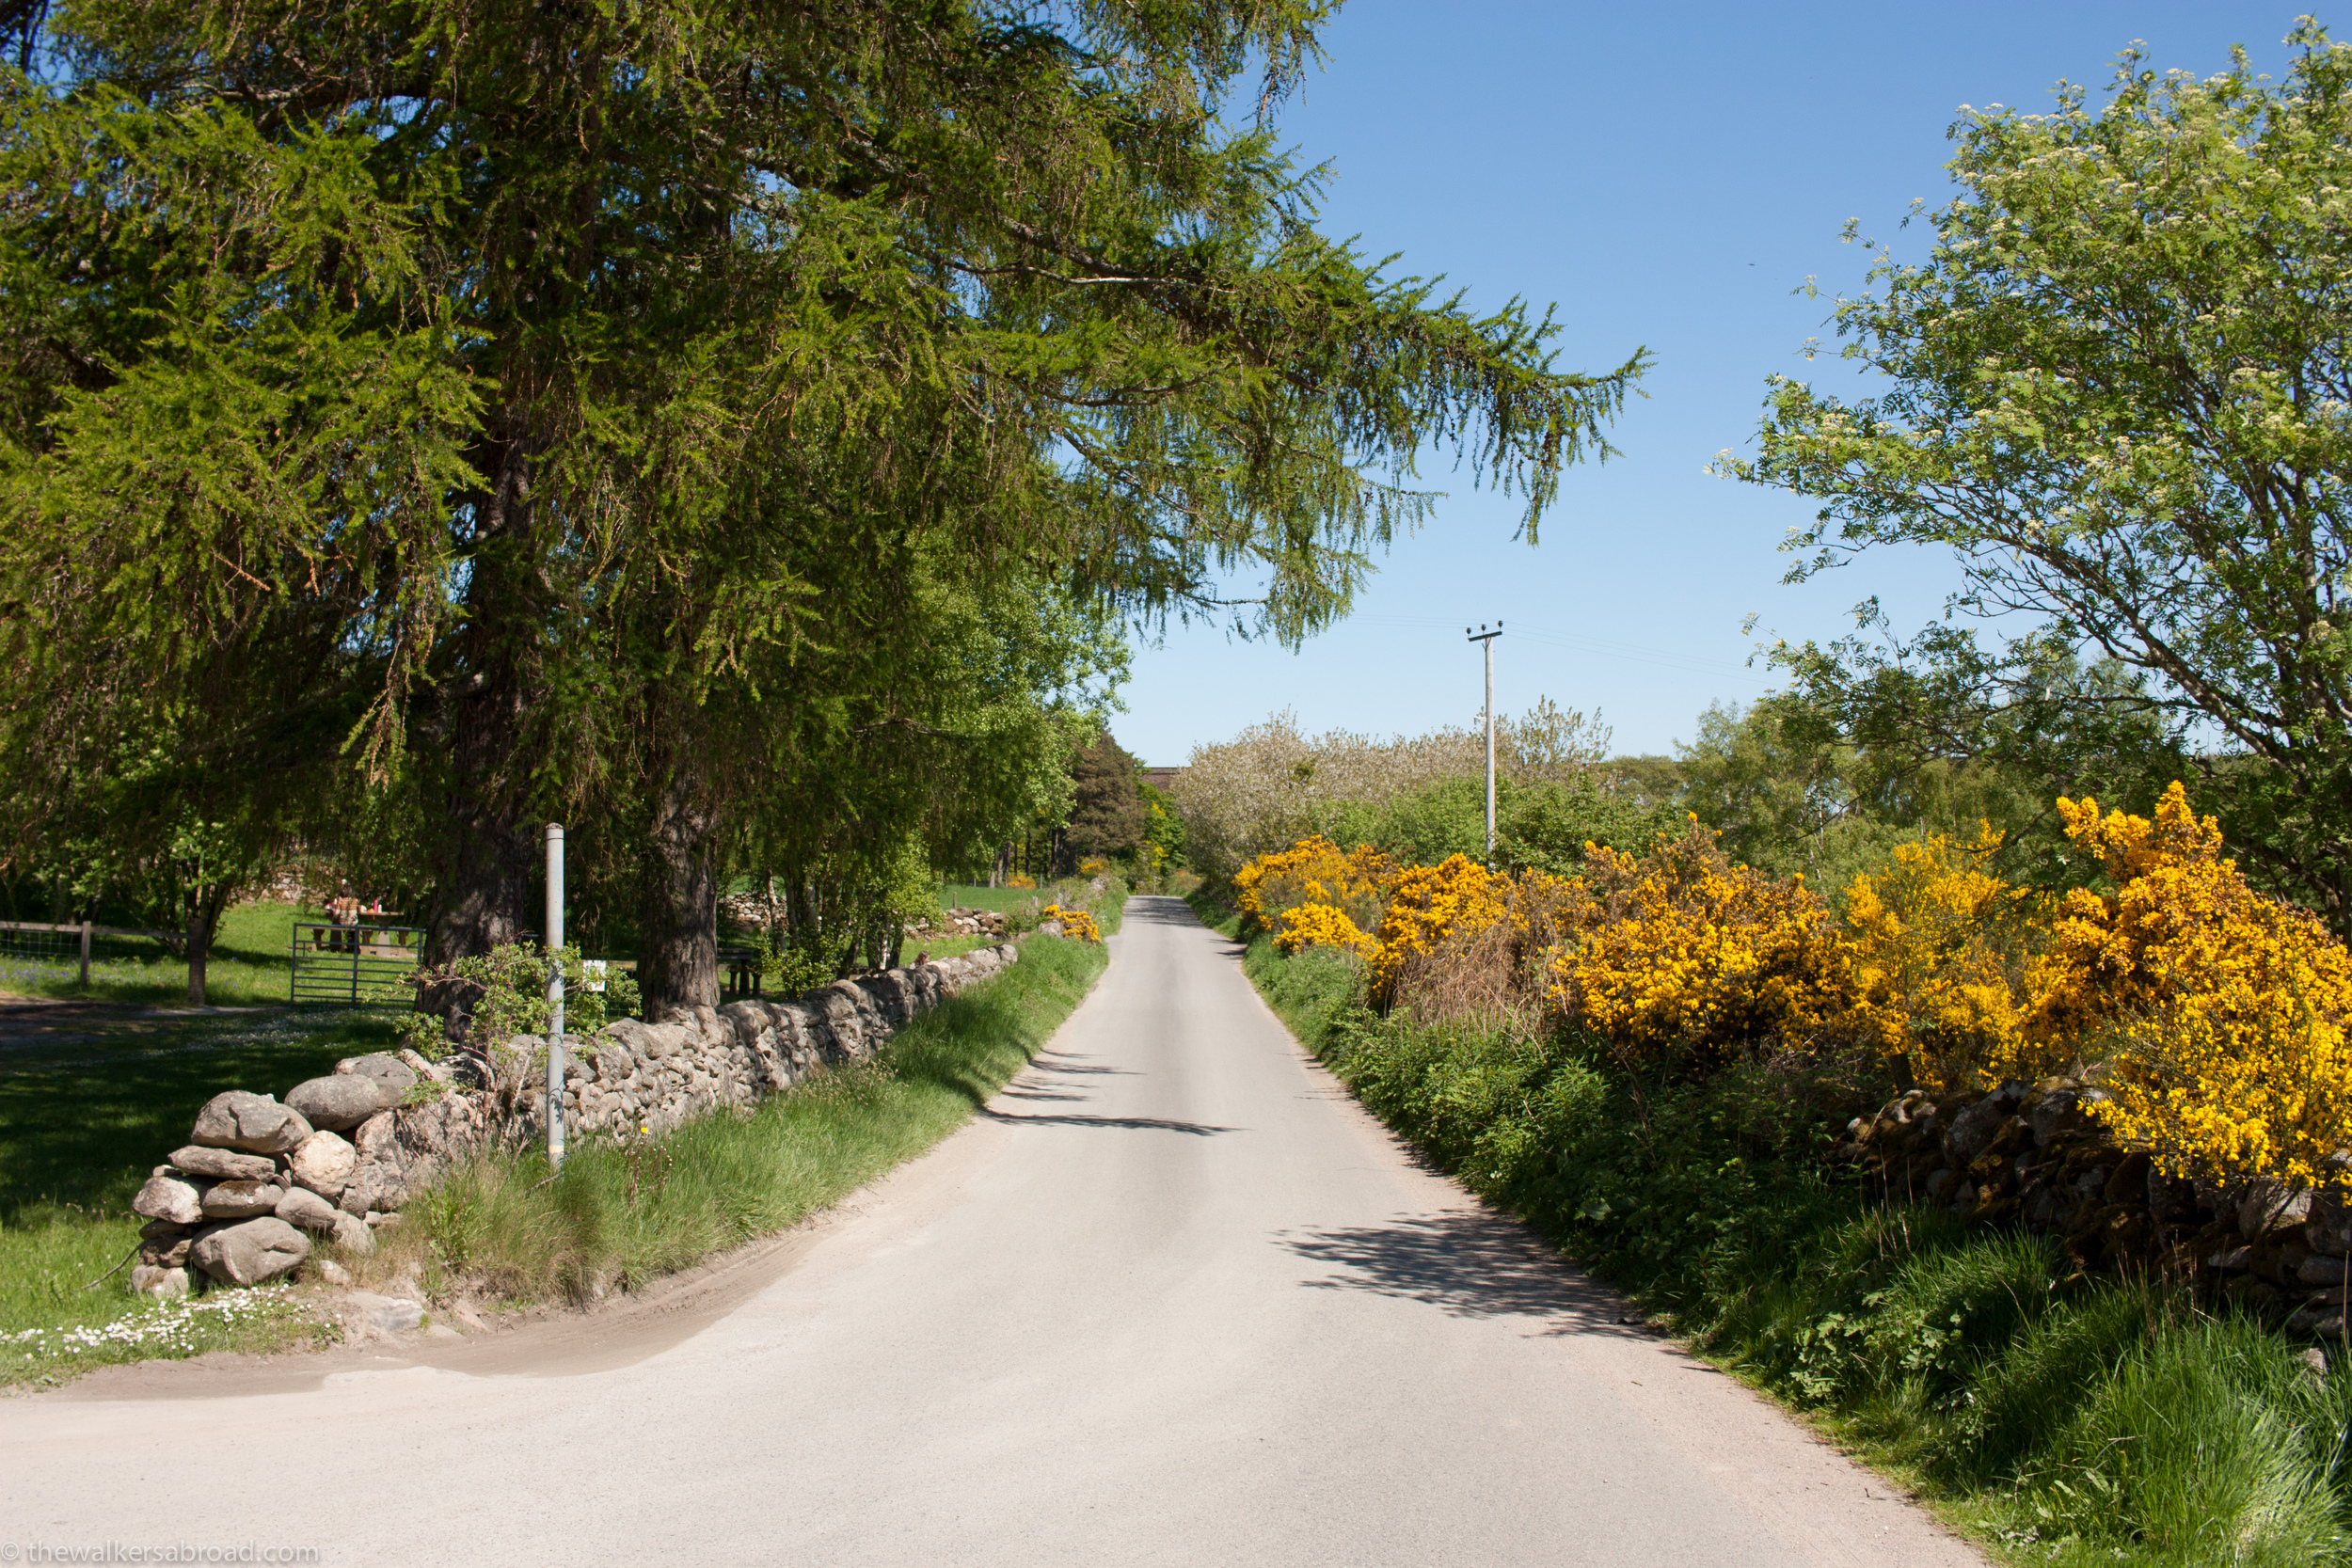 Road leading from the Clava Cairns site. The car park is on the left. Photo by Sarah.